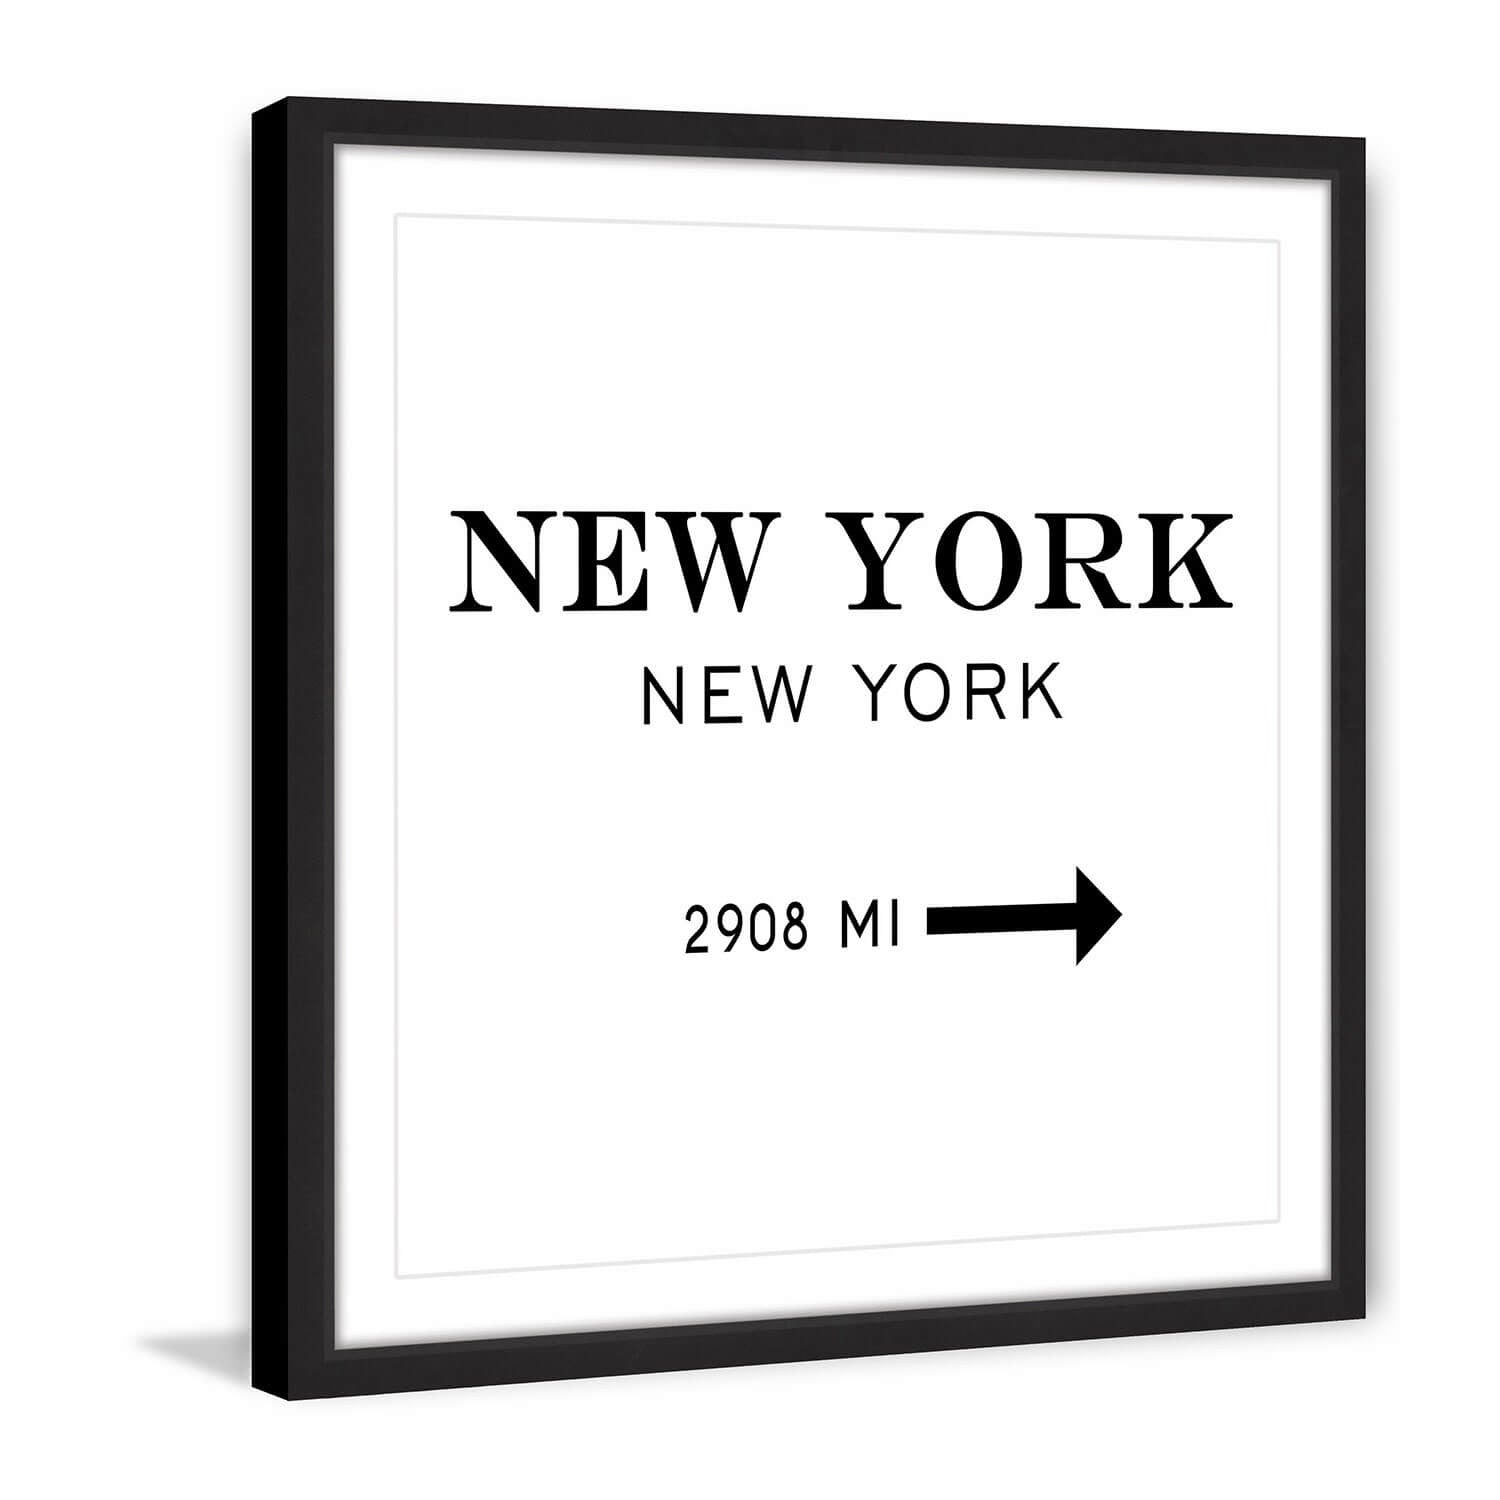 Framed Miles to New York Print - 12x12